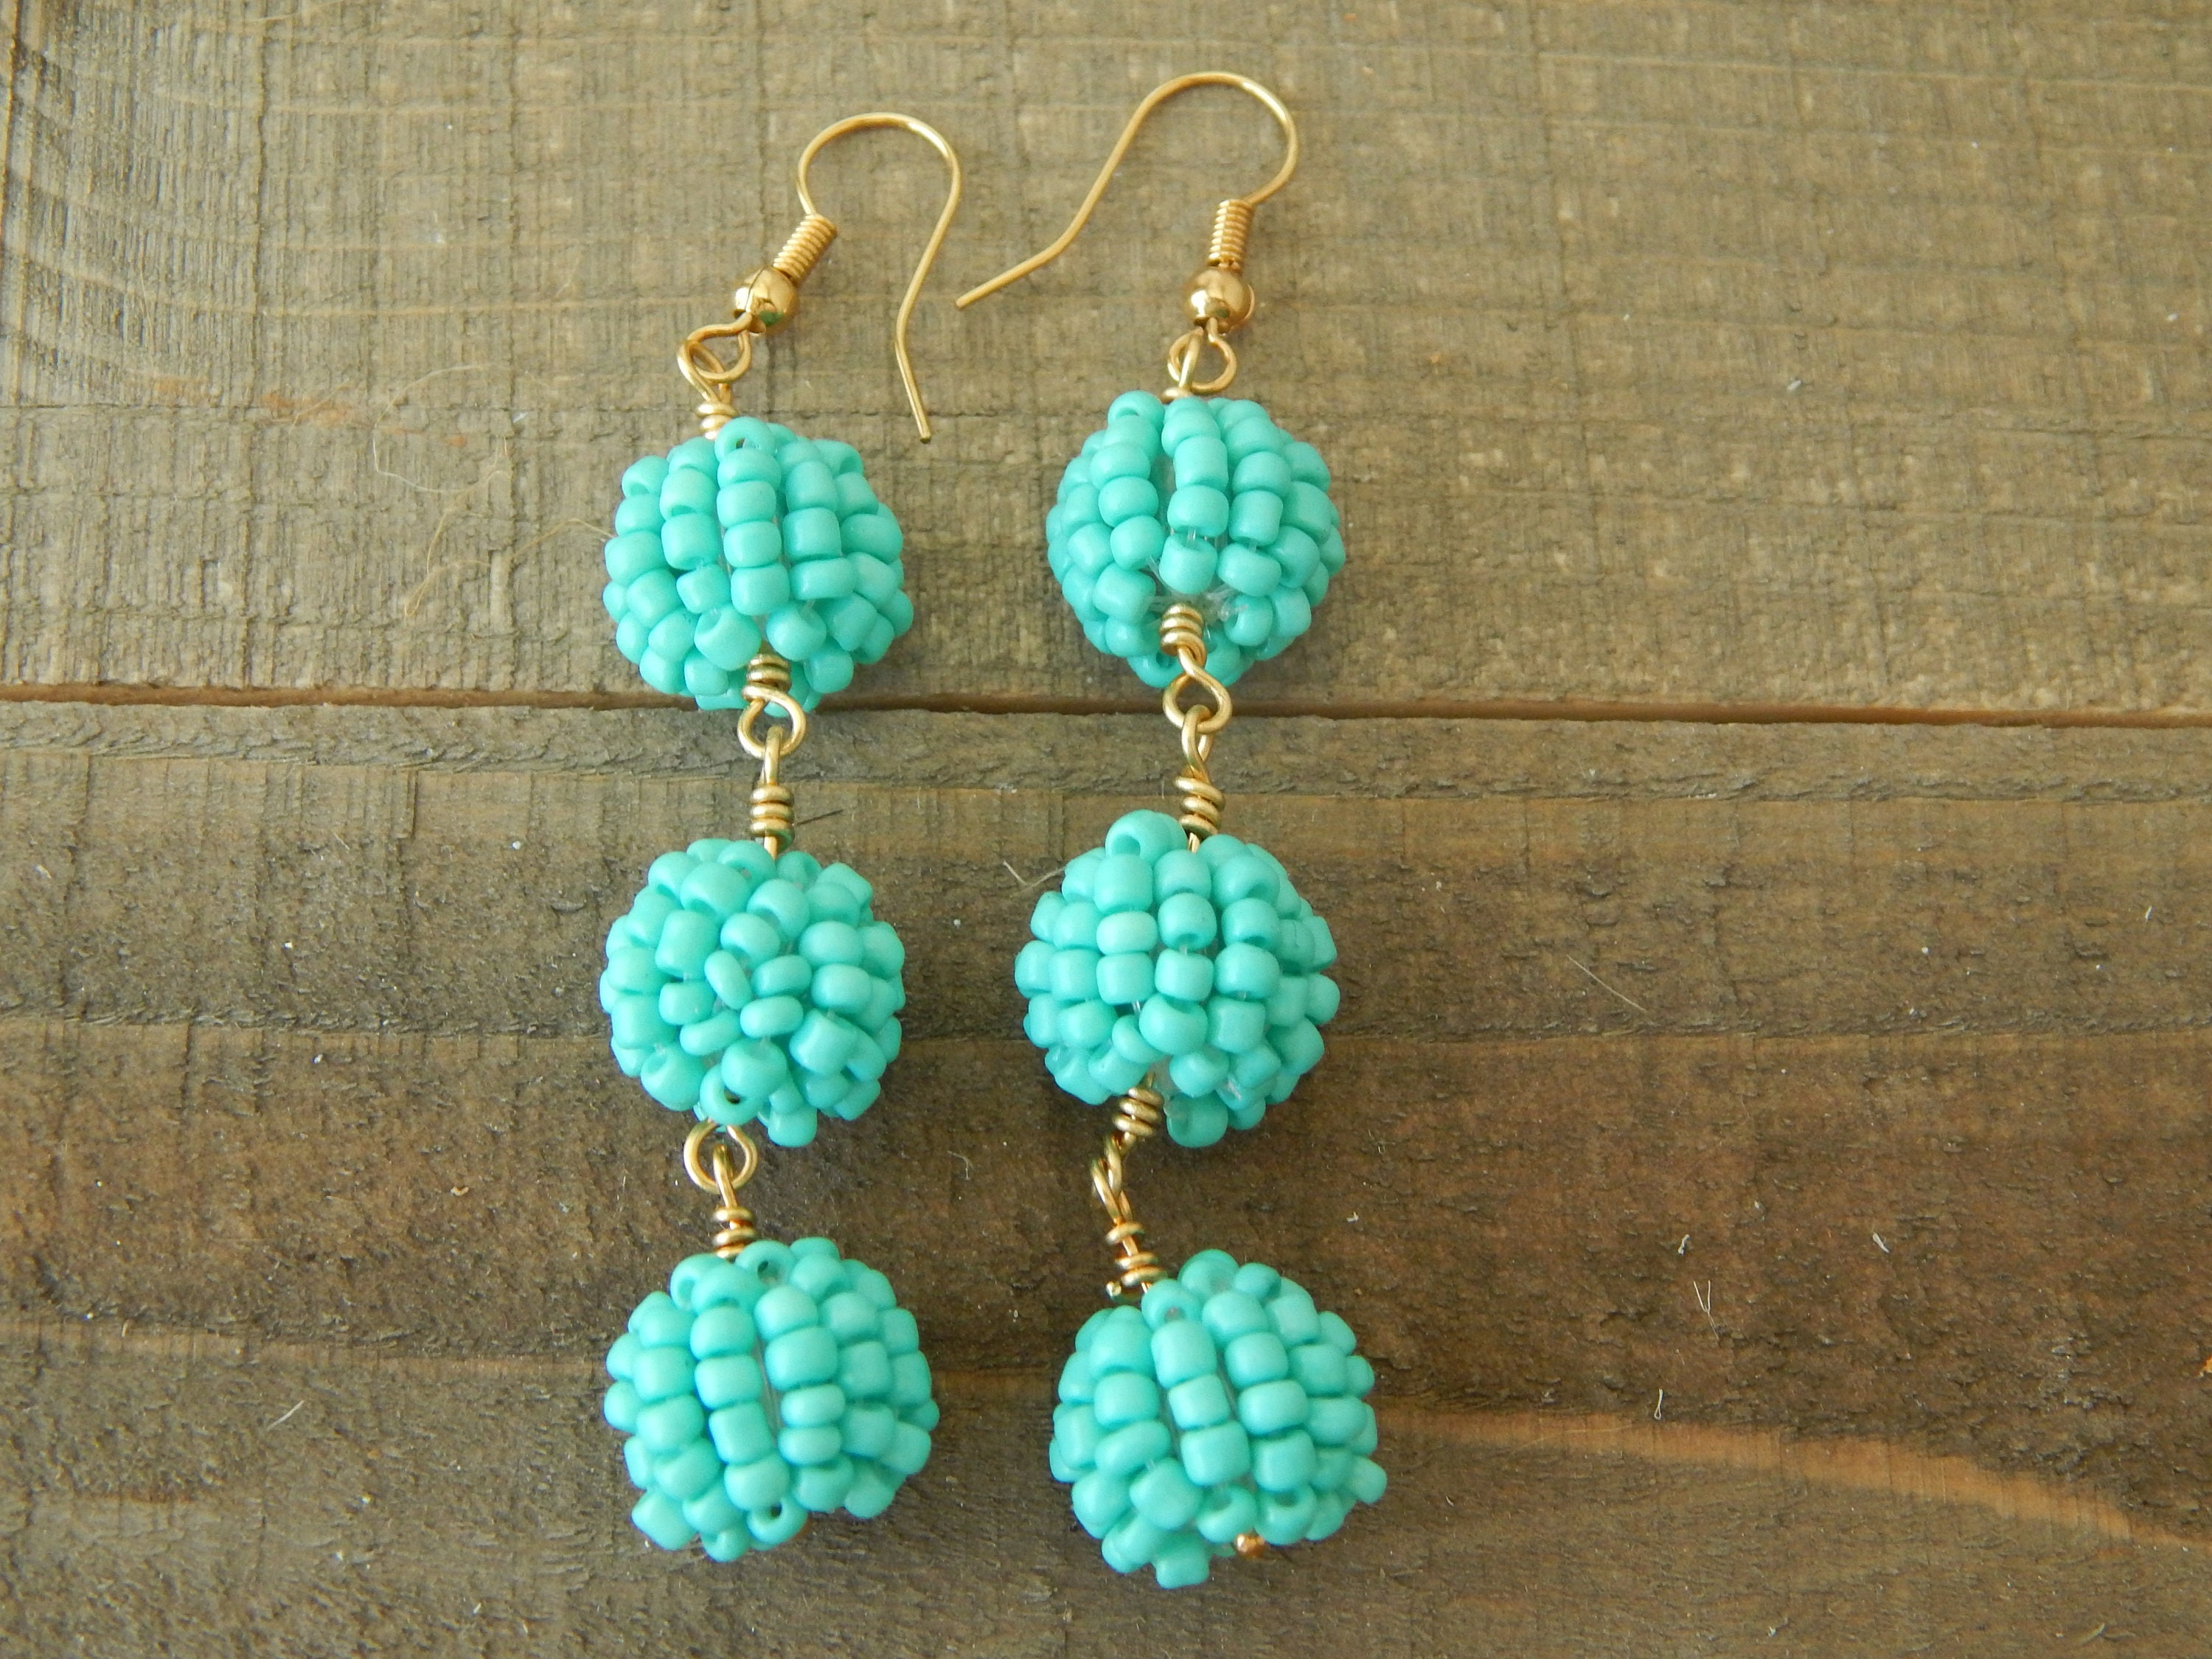 317c95c5a00aff Turquoise beaded drop earrings, seed bead earrings, long dangle earrings,  turquoise and gold, summer jewelry, festival chic style